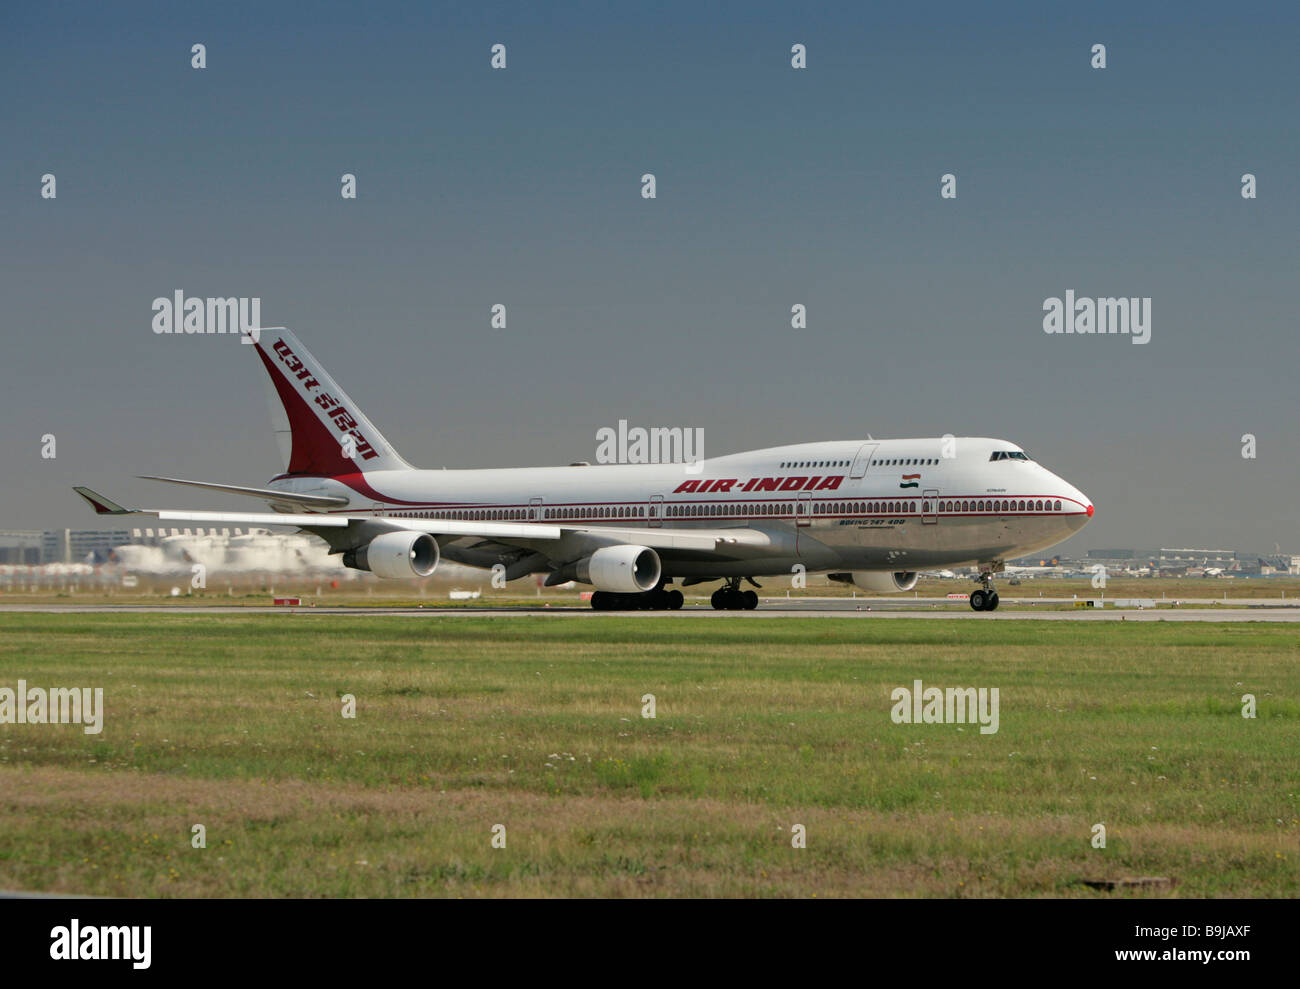 Boeing 747 400 of the airline Air India before takeoff, in Frankfurt Airport, Frankfurt, Hesse, Germany, Europe - Stock Image